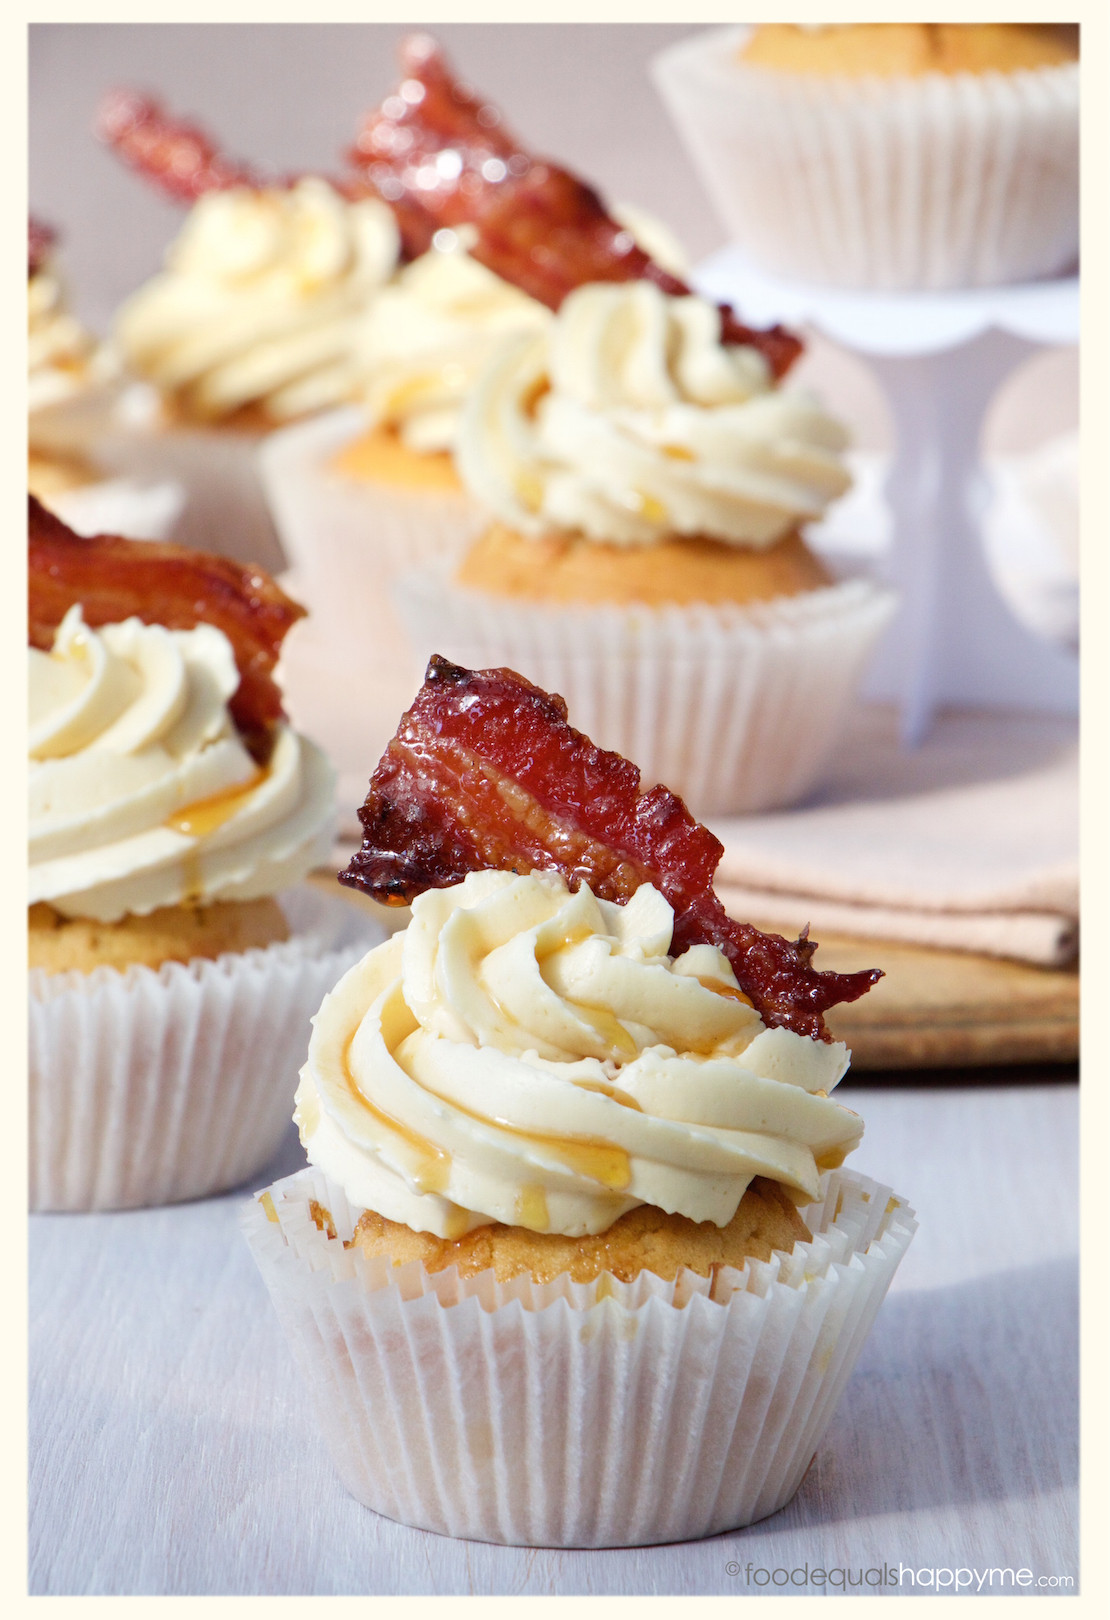 Maple Bacon Cupcakes  Maple Bacon Cupcakes with a touch of whisky